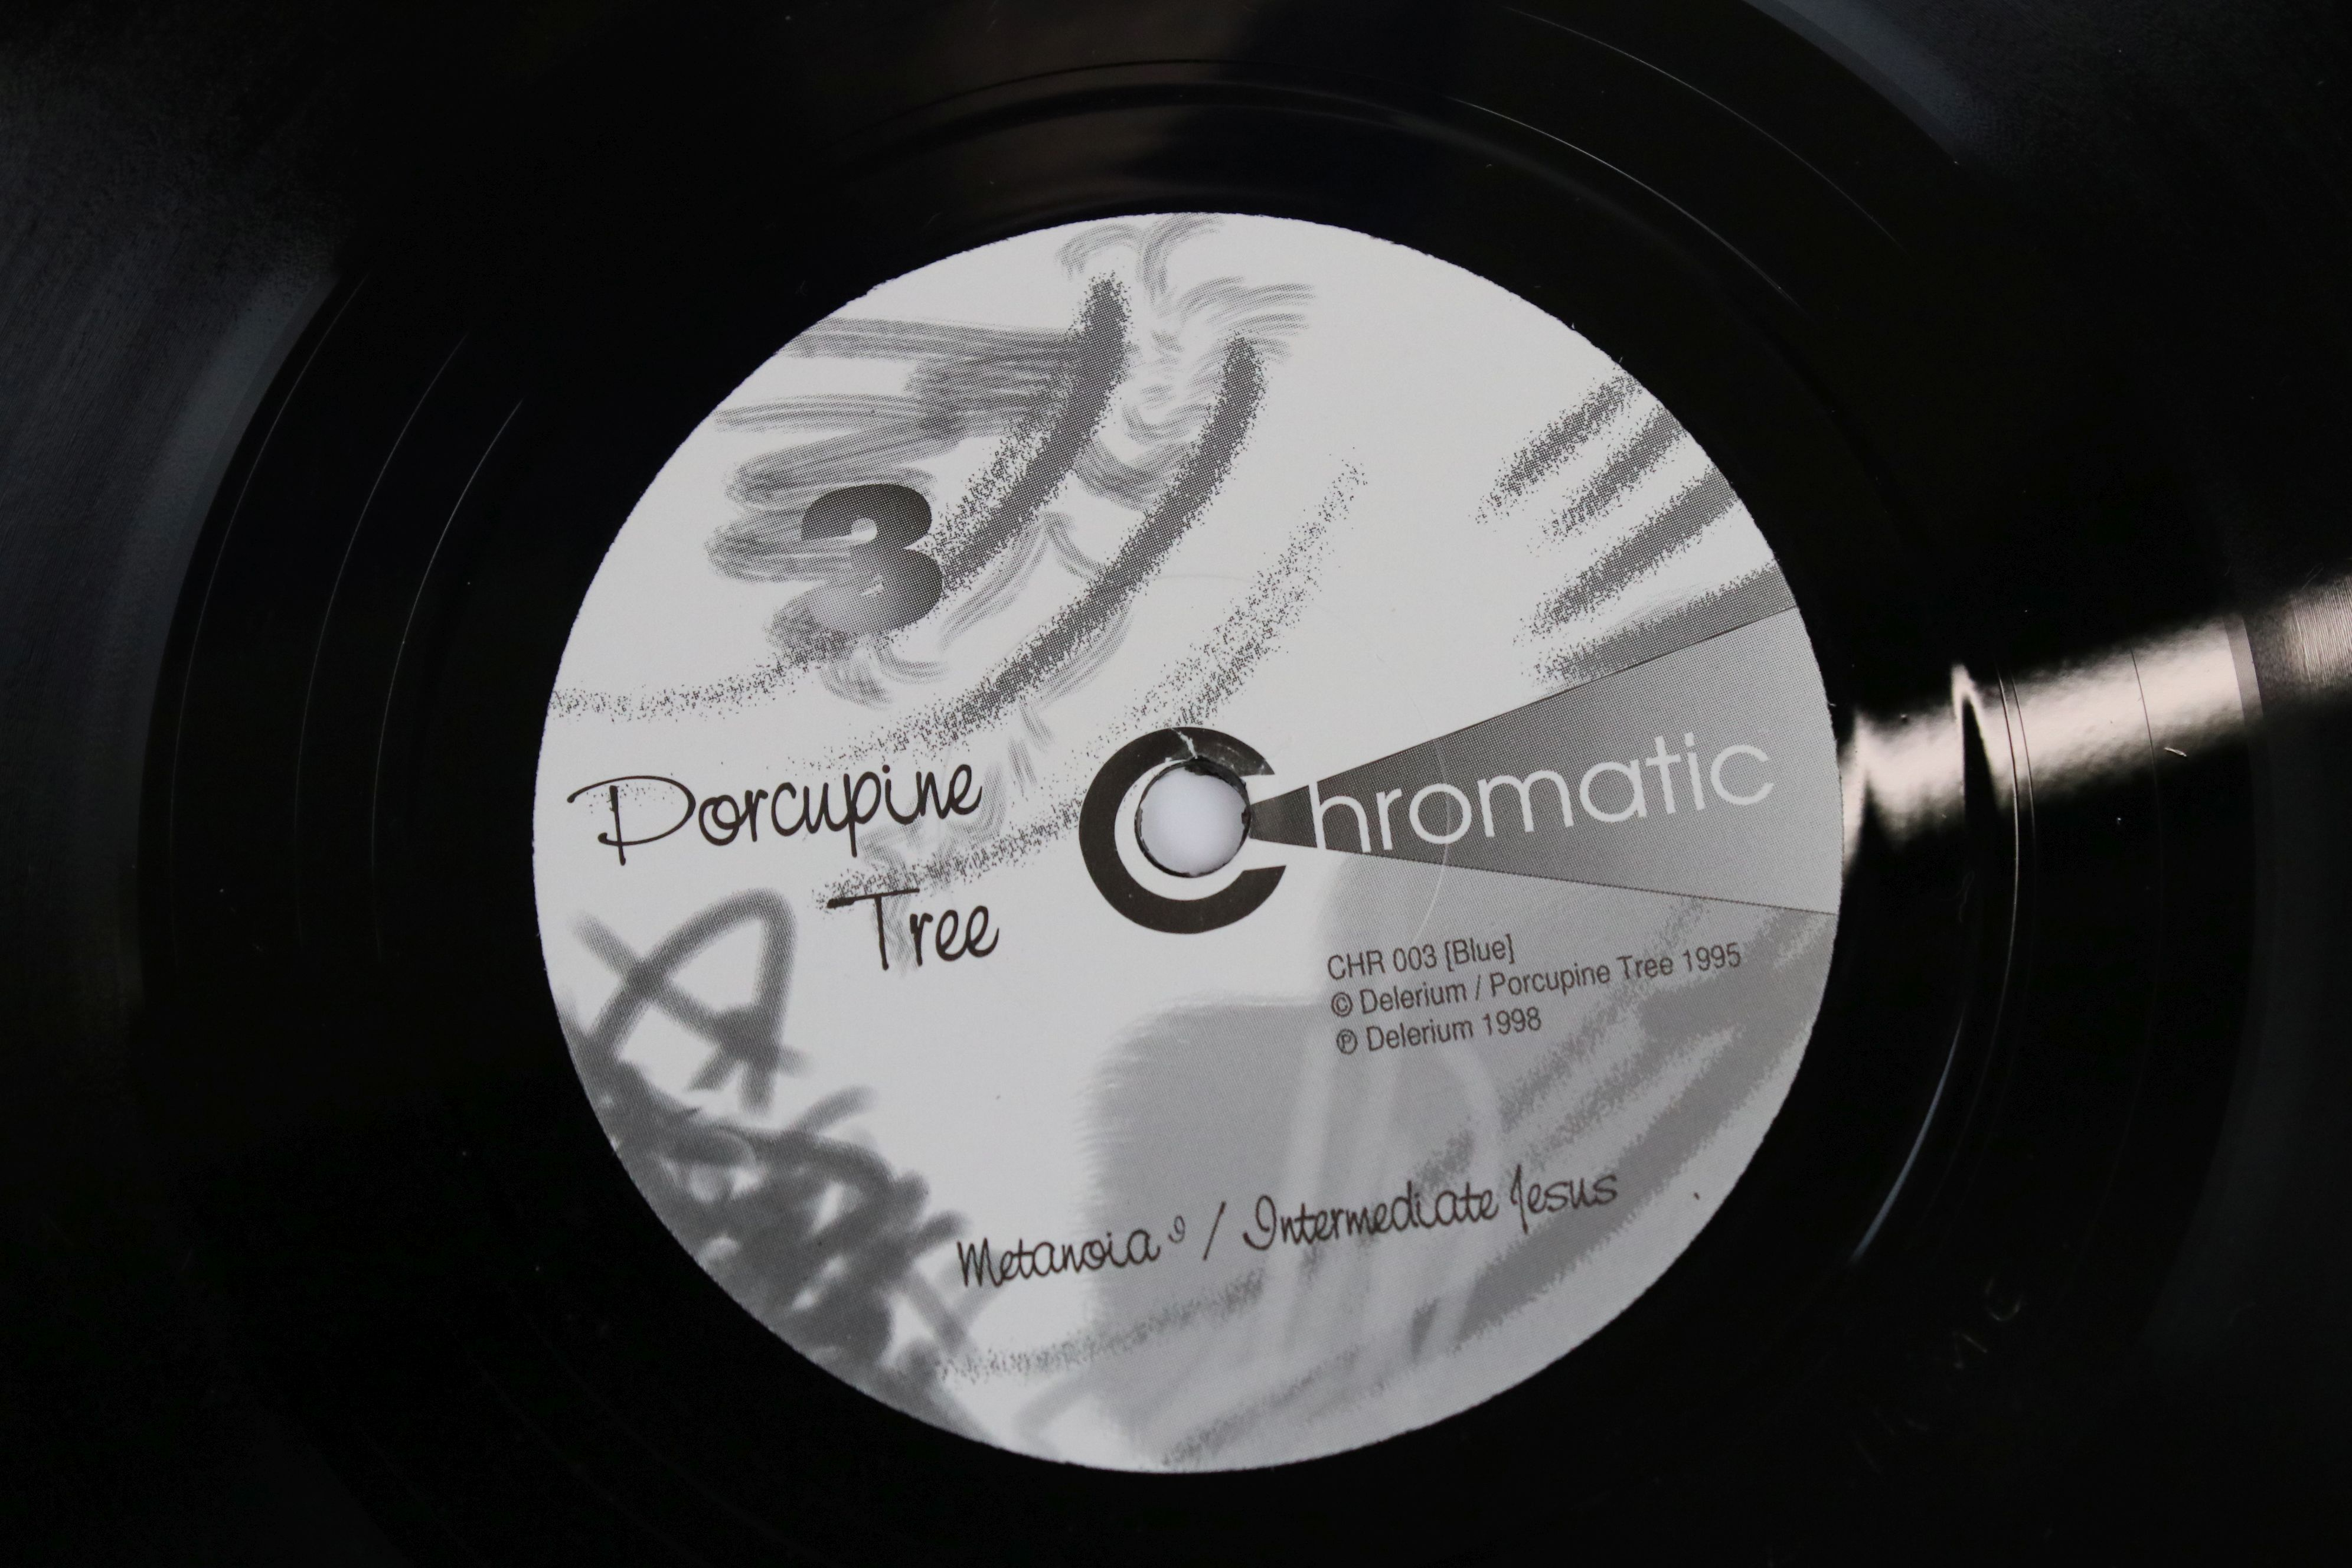 """Vinyl - Porcupine Tree, Metanoia, limited edition 10"""" double LP, Chromatic CHR 003, in original - Image 3 of 5"""